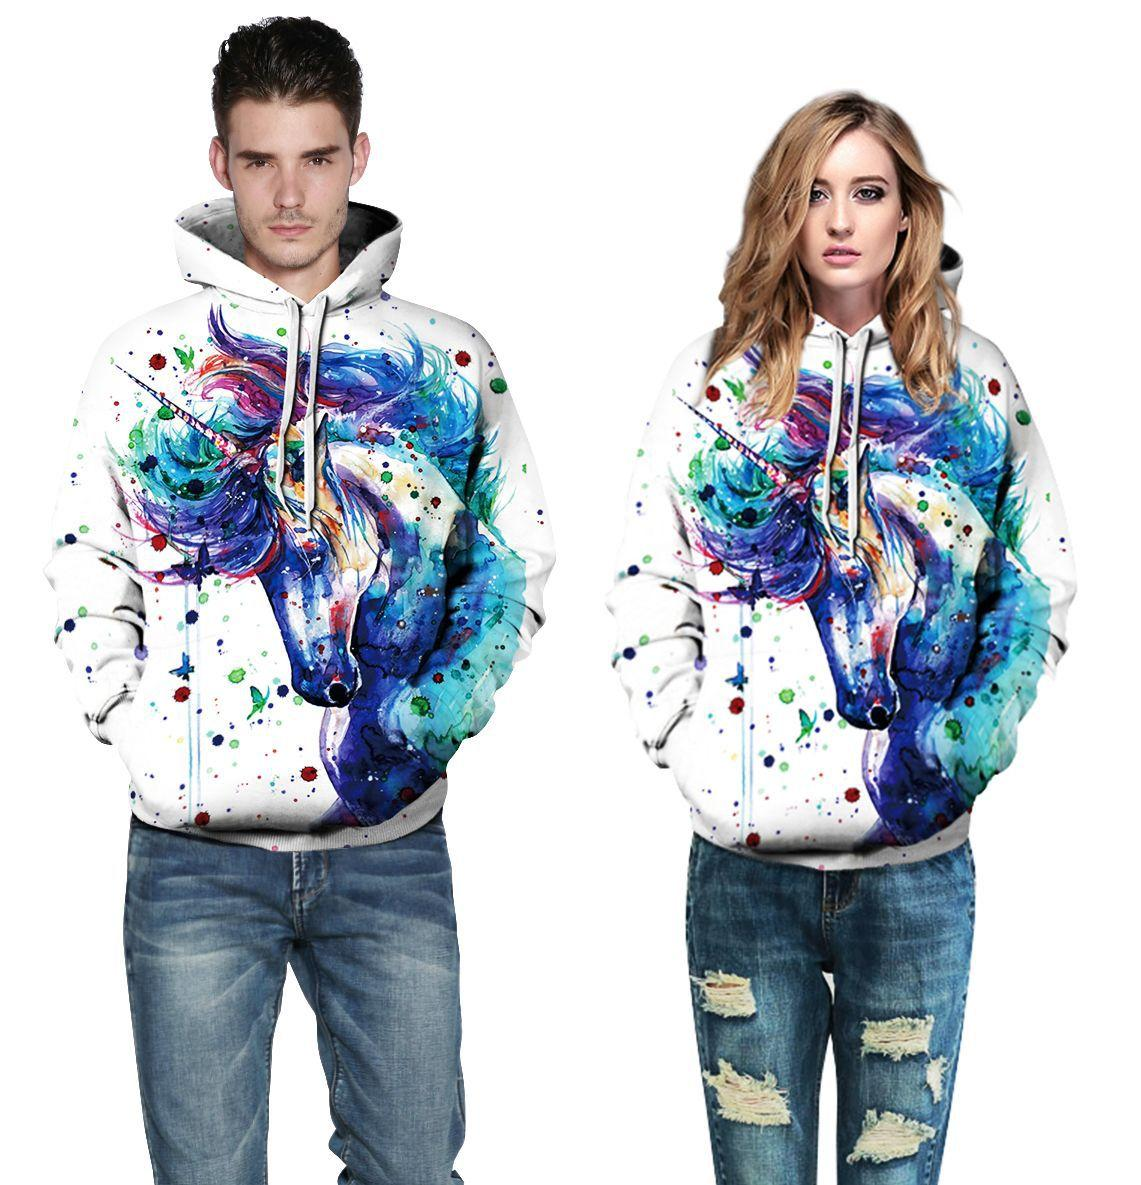 fe8c2bfd9c 2018 3D Printing Couples Clothing Fashion Sport Hoodies Coat With ...